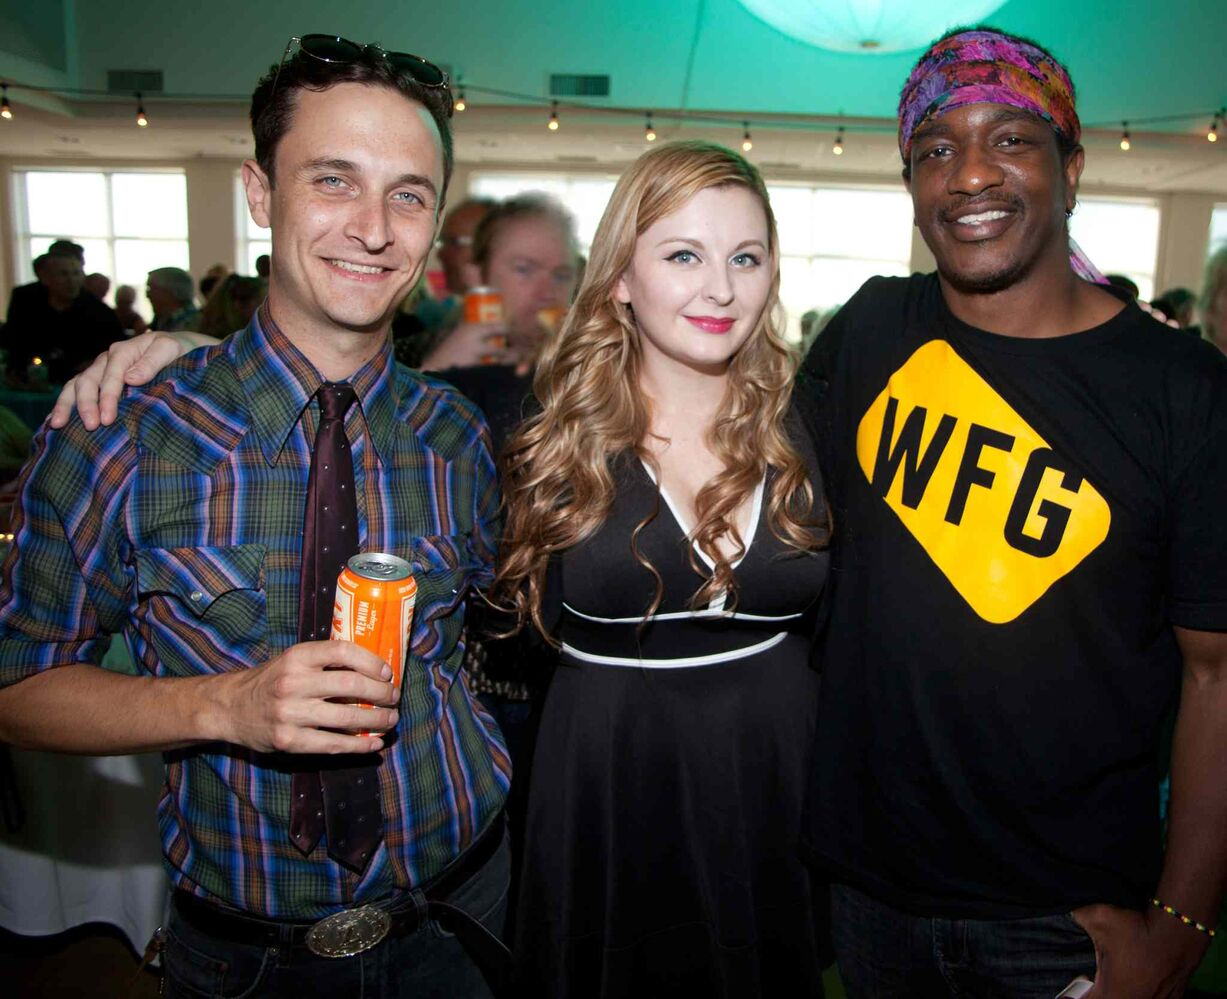 An opening reception for the 15th annual Gimli Film Festival was held Wednesday, July 22, 2015 at the Waterfront Centre. Pictured, from left, are Aaron Zeghers, Alex Kristiansen and Ben Williams.